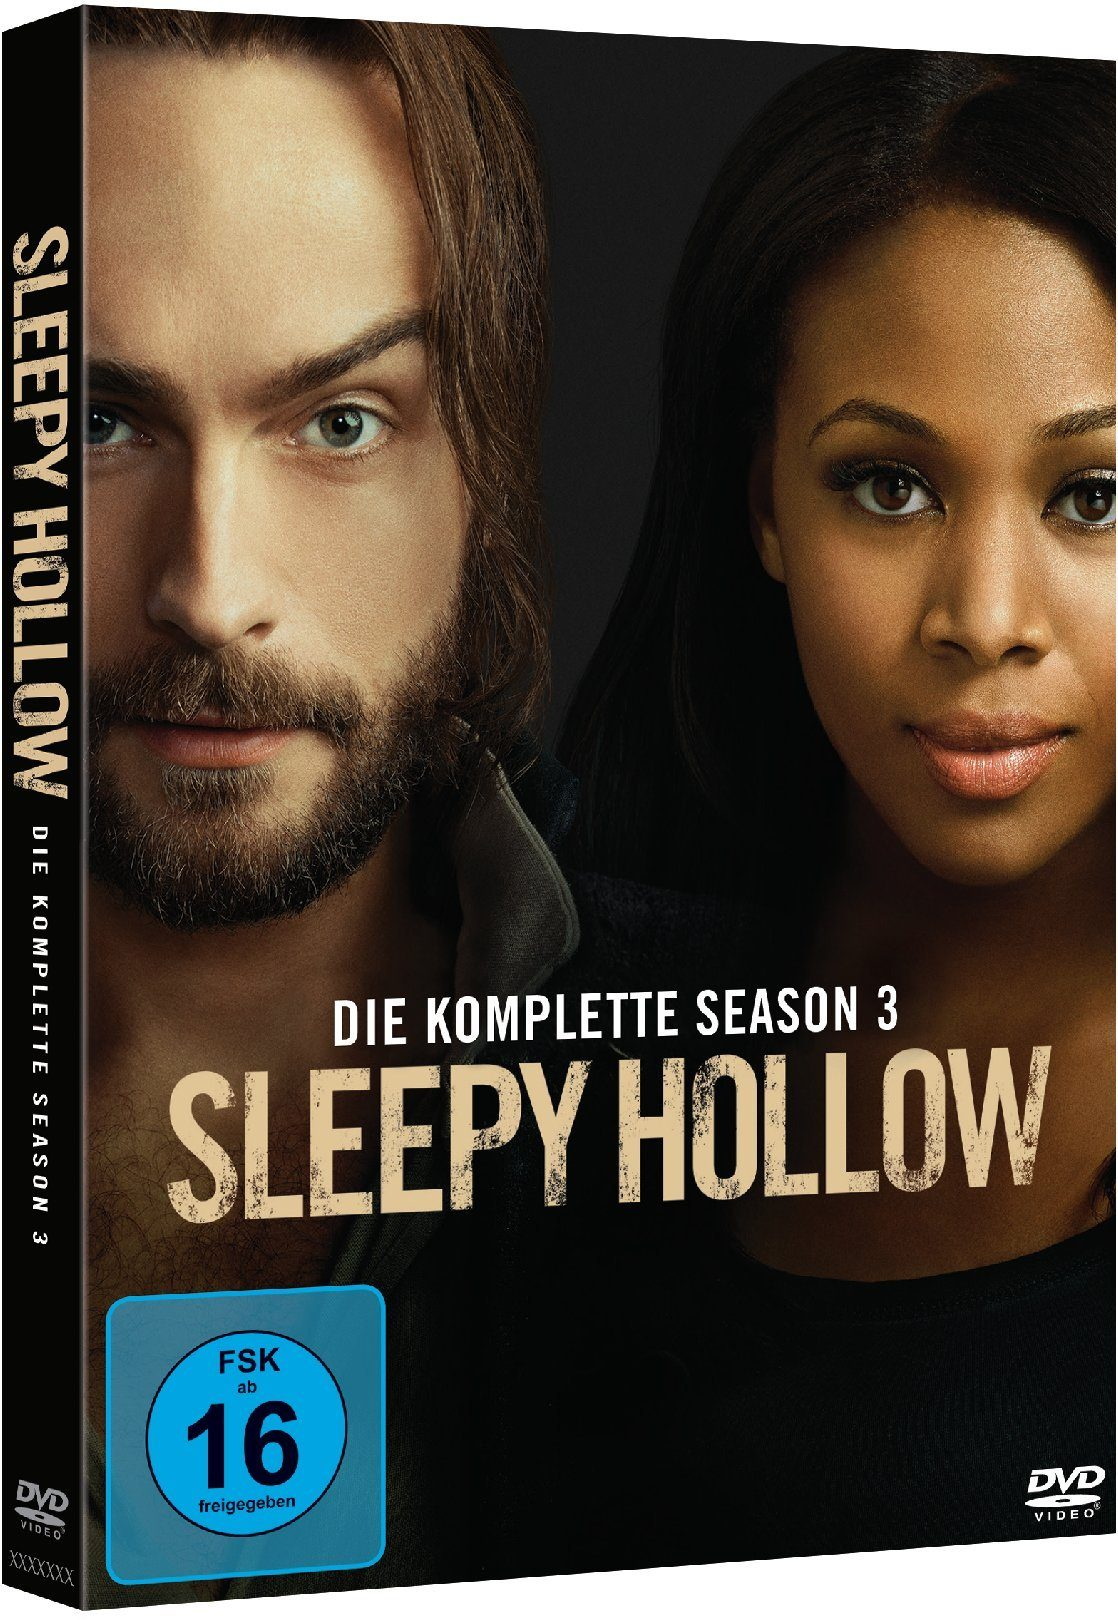 Fox Sleepy Hollow Season 3 »DVD«